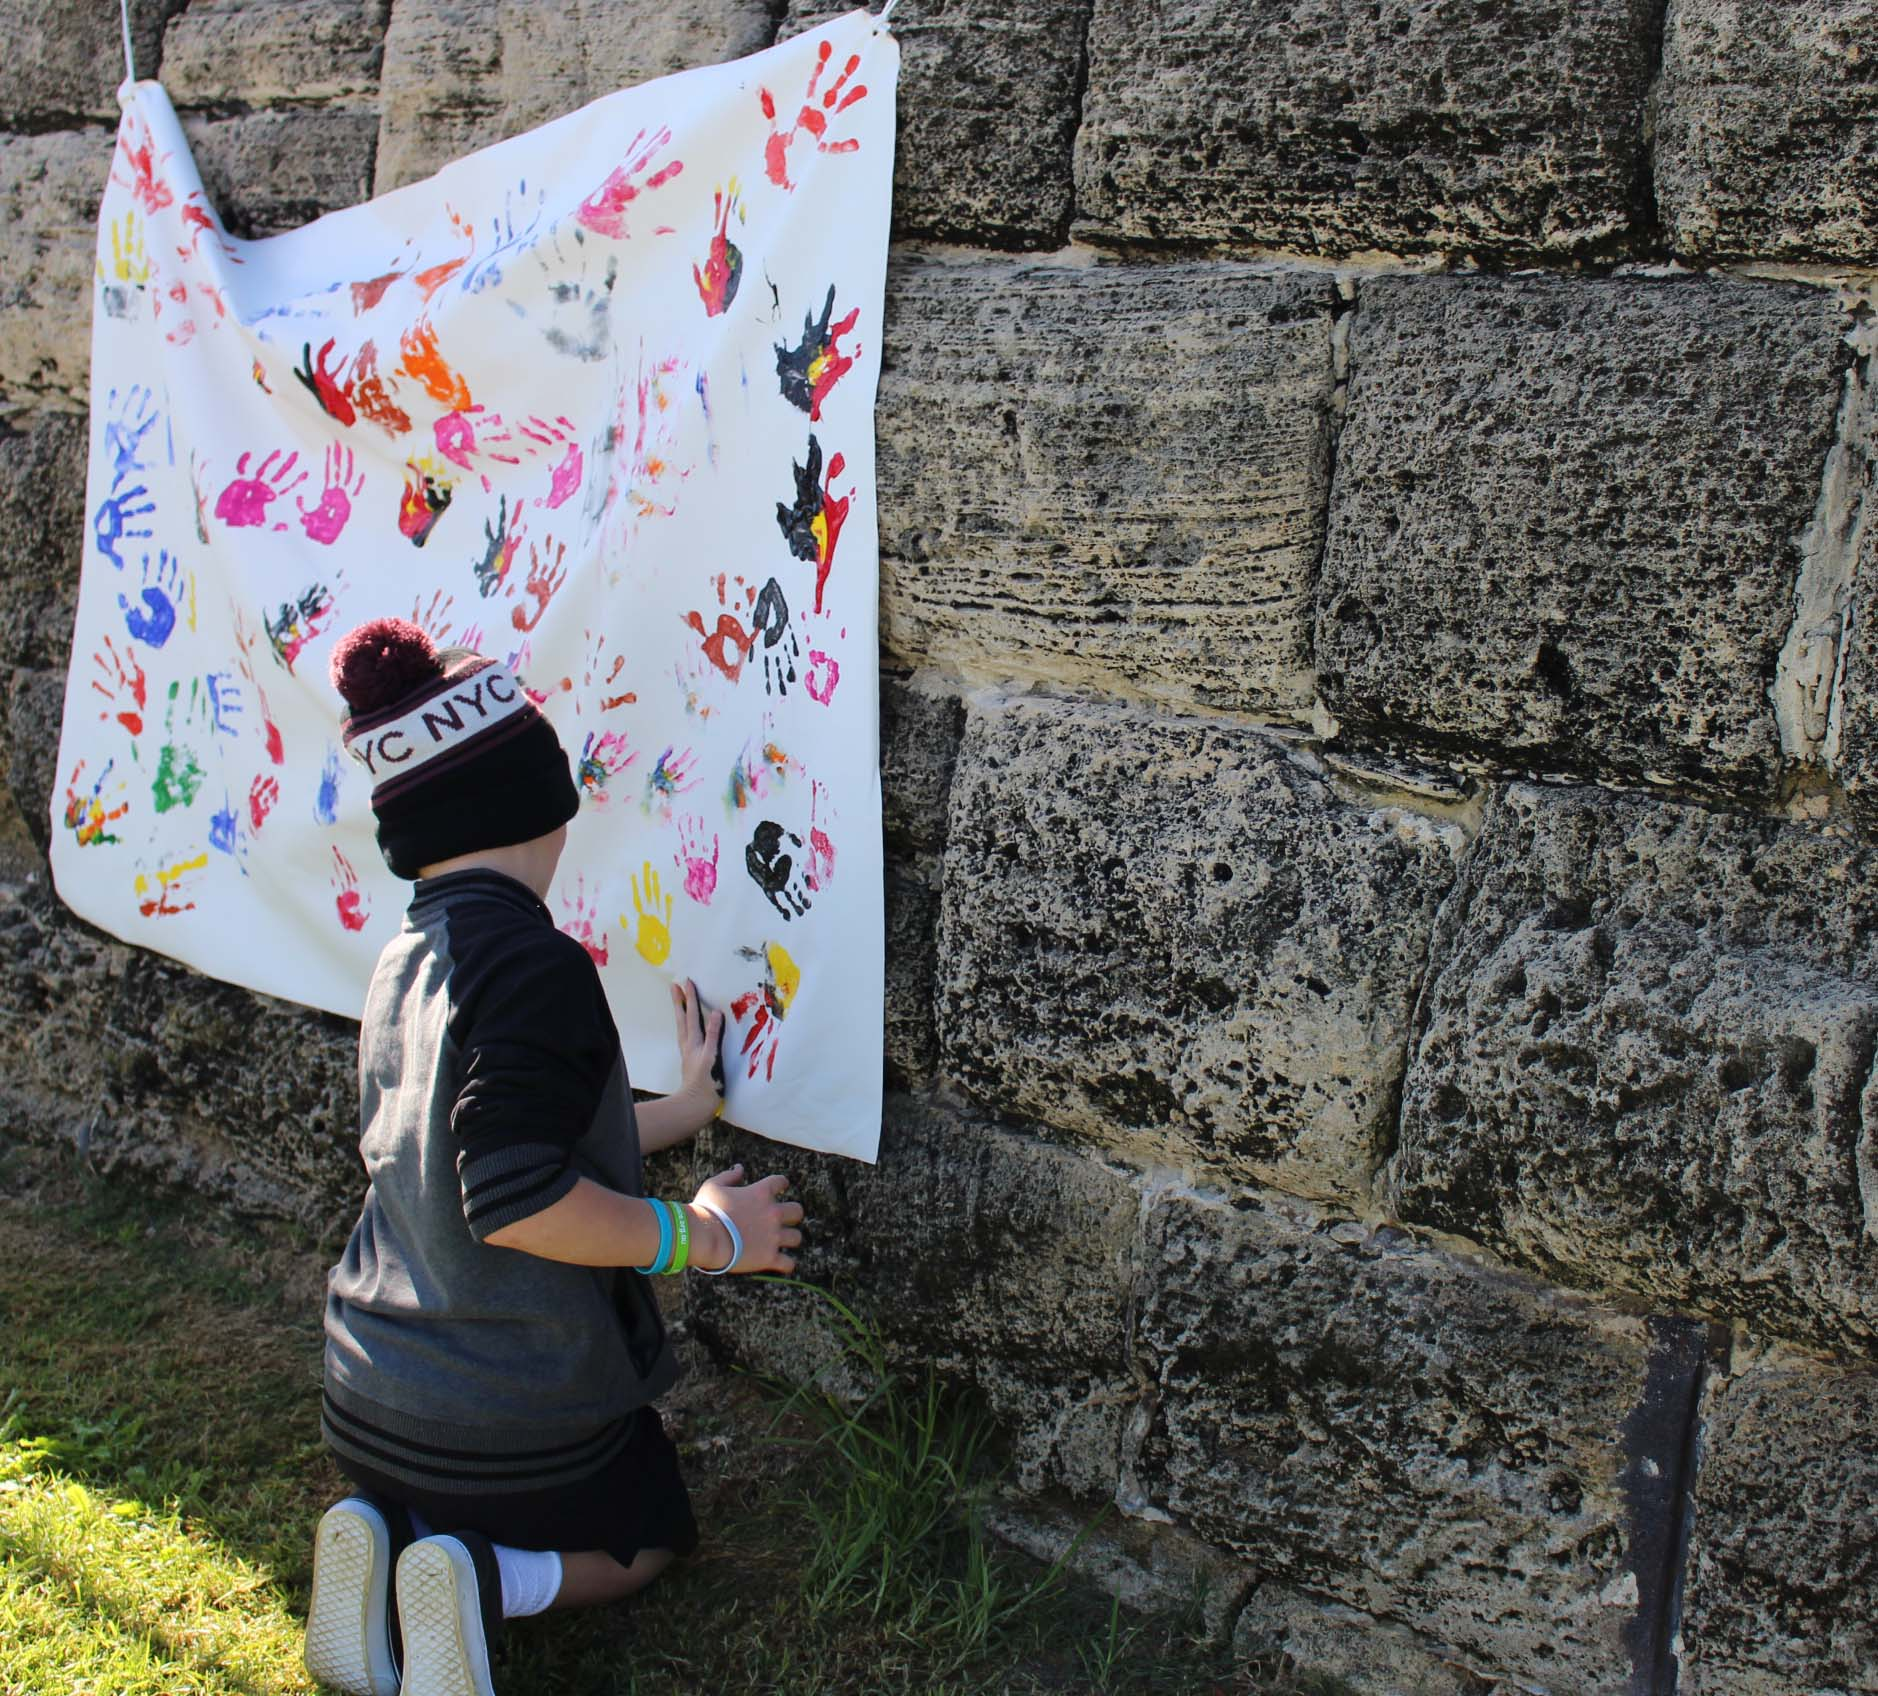 Reconciliation art at the City of Stirling Reconciliation Week event in Scarborough.